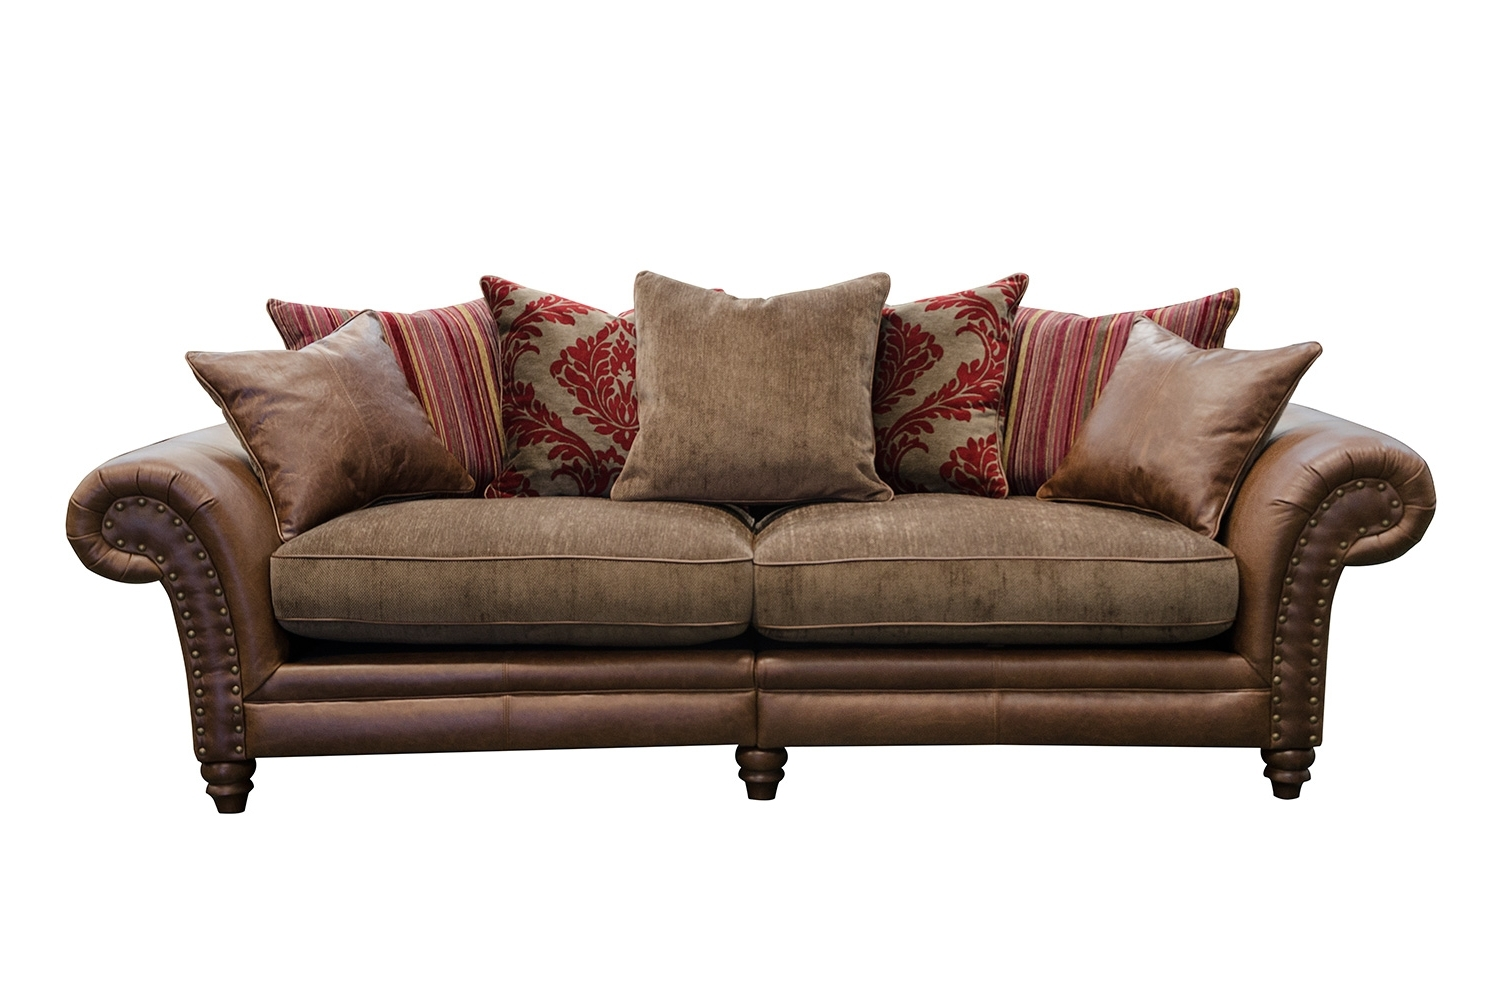 Hudson 4 Seater Sofa – Alexander And James Throughout Well Liked 4 Seater Sofas (View 15 of 15)